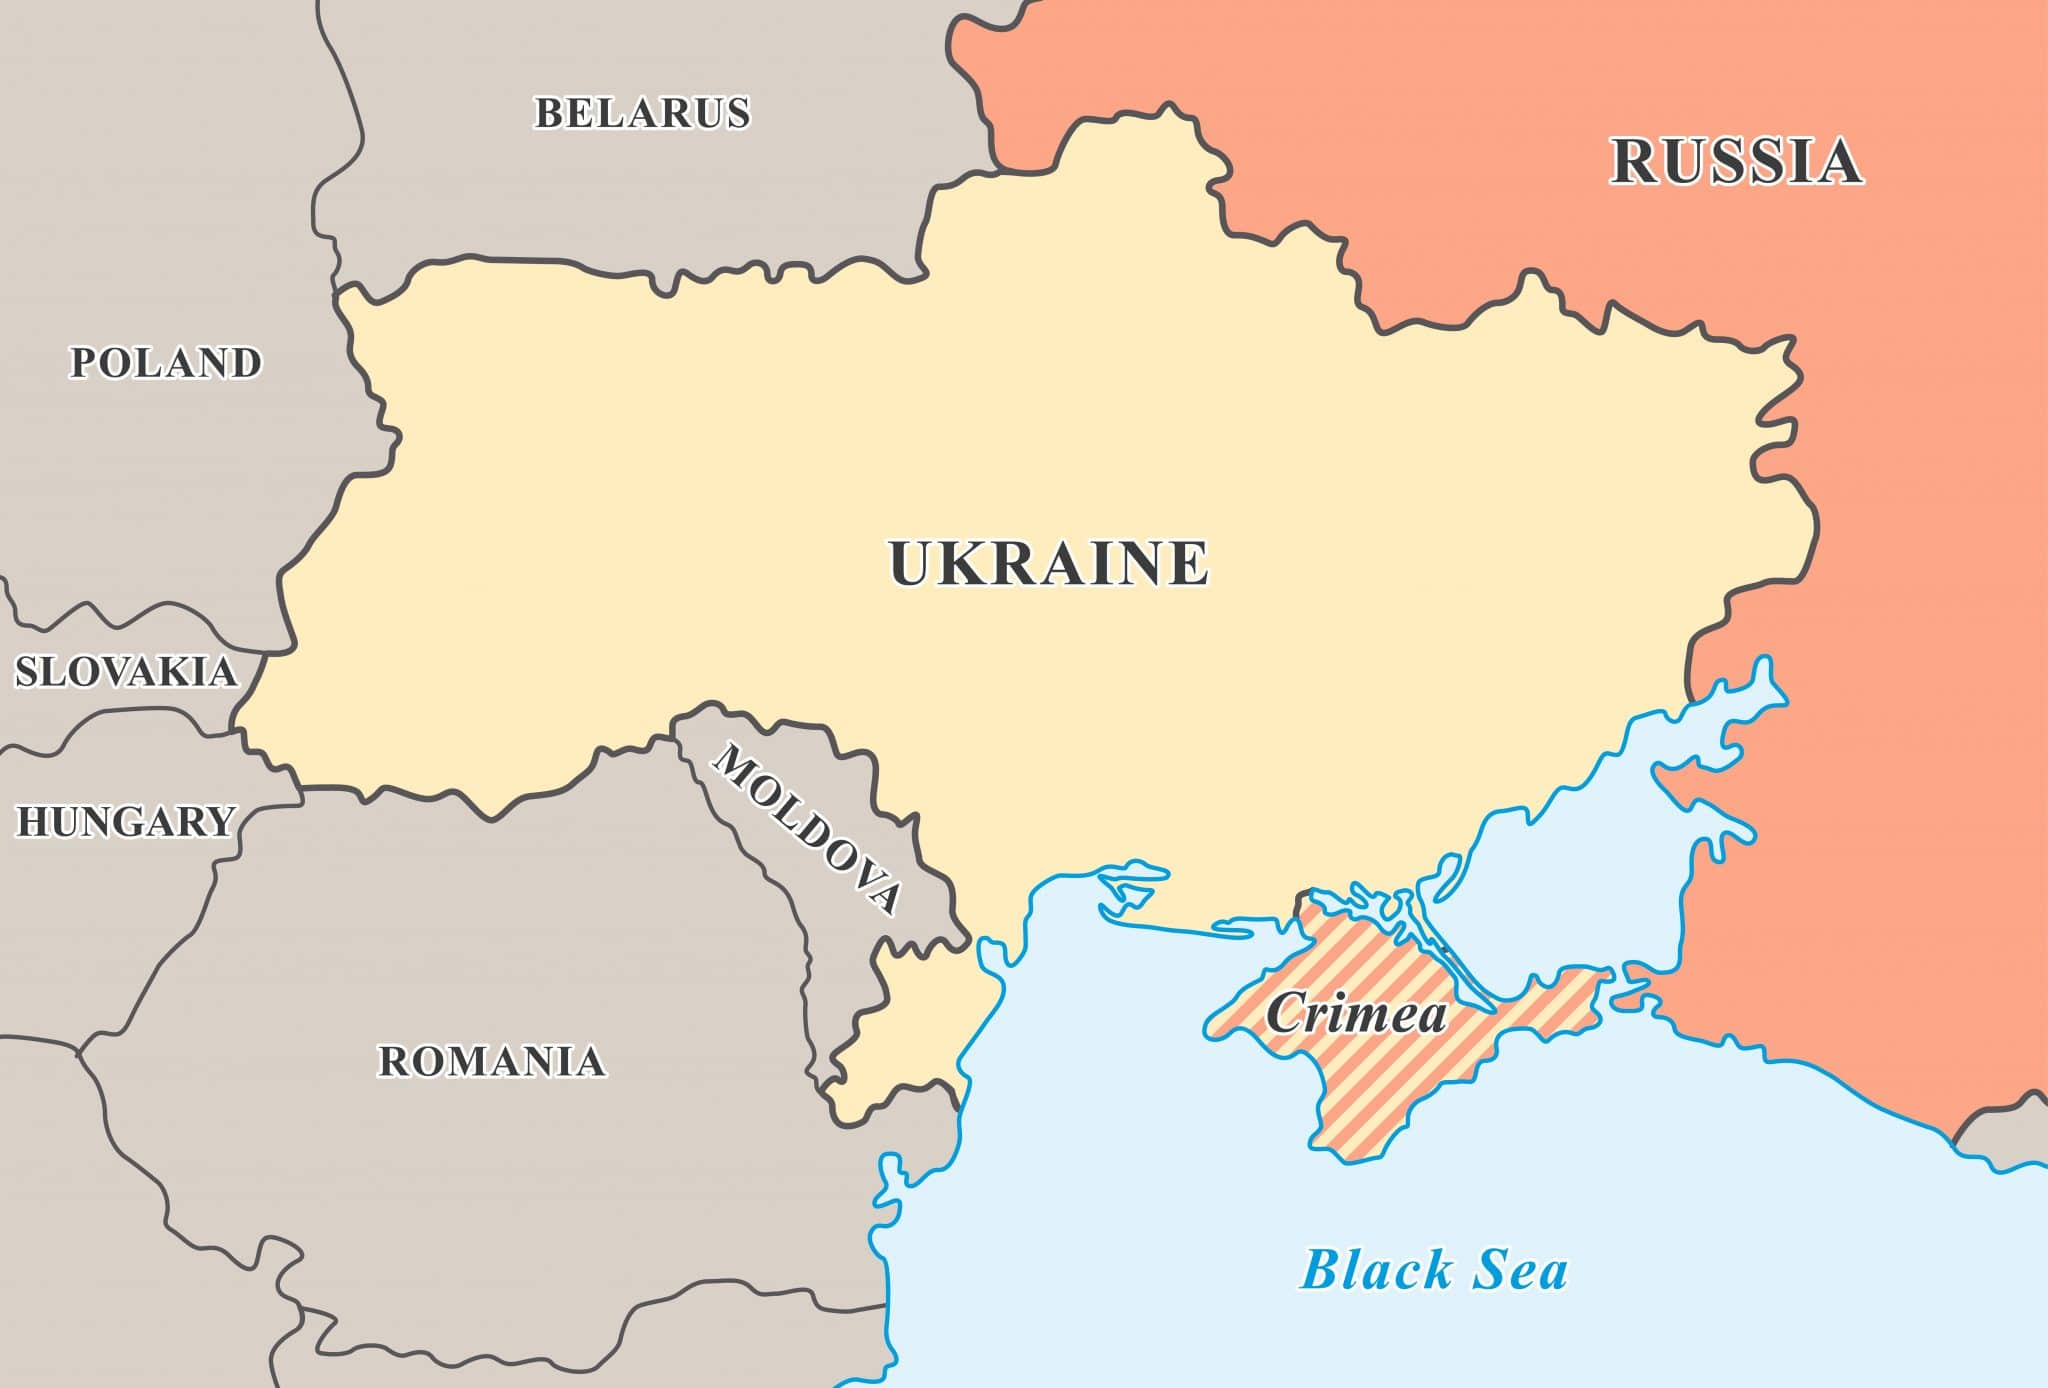 donetsk and luhansk oblasts of ukraine and the area of conflict between the ukrainian forces and the pro russian separatists with the self proclaimed